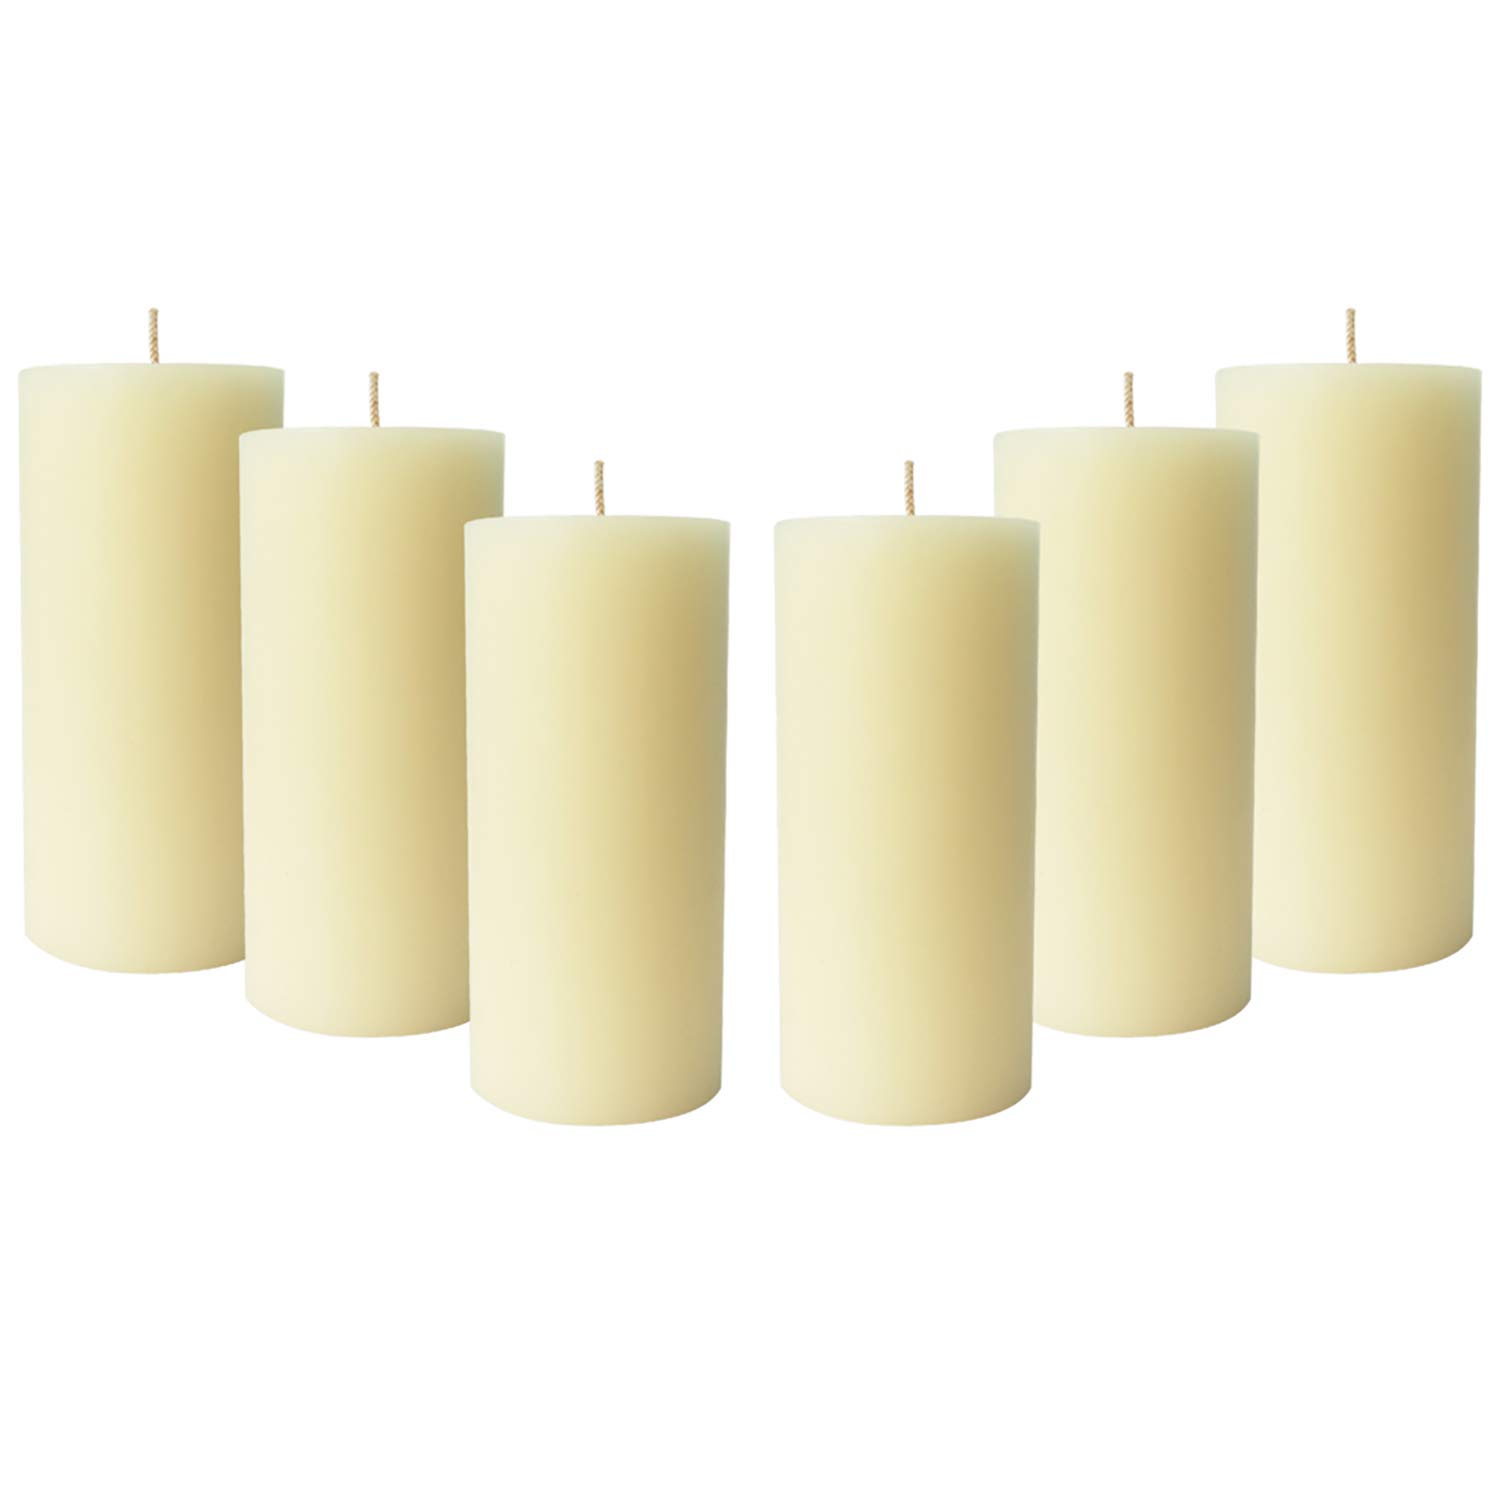 Simply Soson 6 Ivory Pillar Candles 3x6 | unscented Pillar Candles | Dripless Pillar Candles Bulk (6 Pack) Code 2258